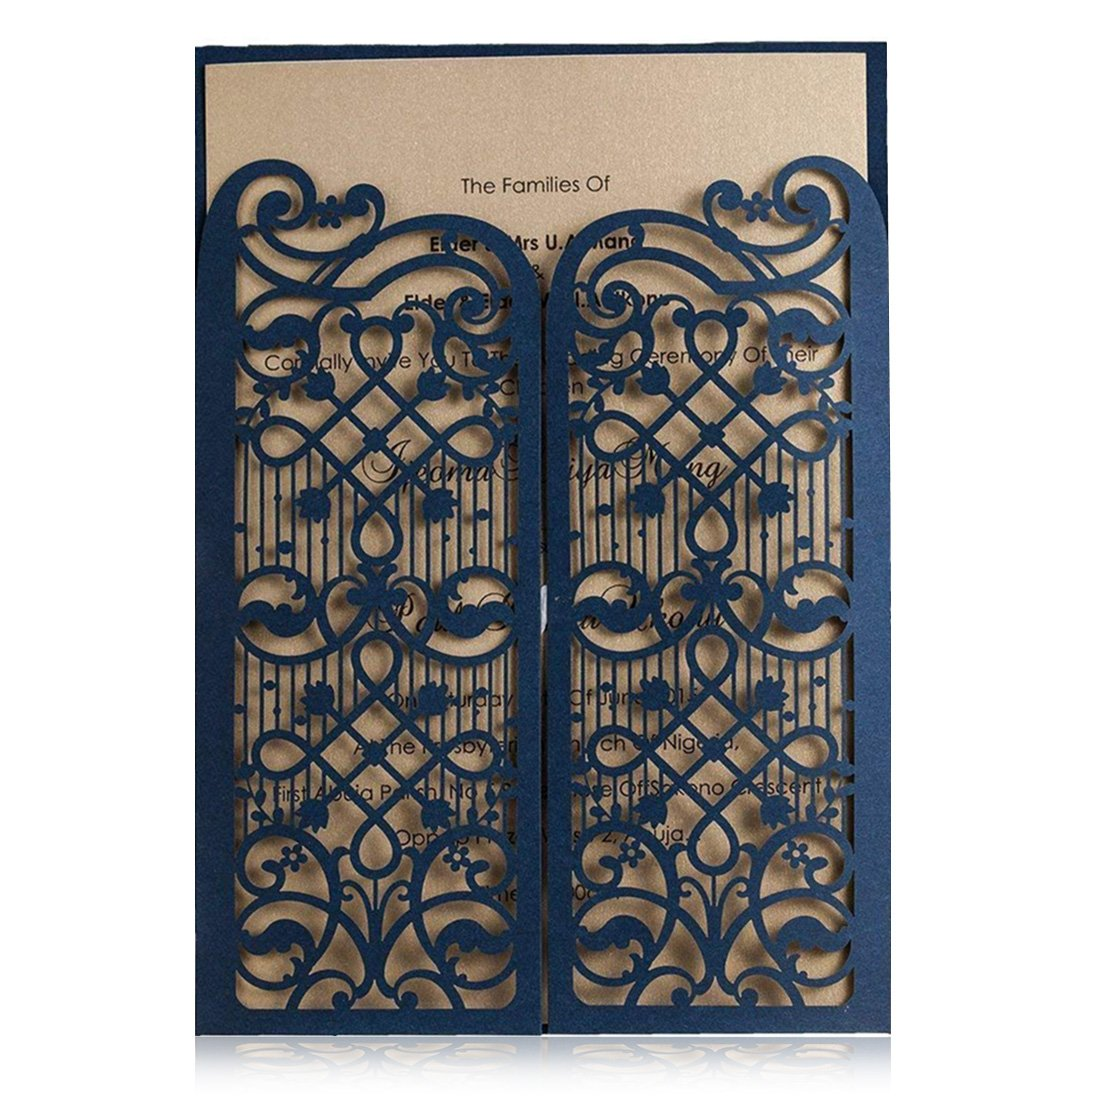 Wishmade Navy Blue Laser Cut Wedding Invitations Cards With Hollow Favors Open Door Design for Birthday Bridal Shower Engagement Printable Cardstock (pack of 50pcs) CW5102